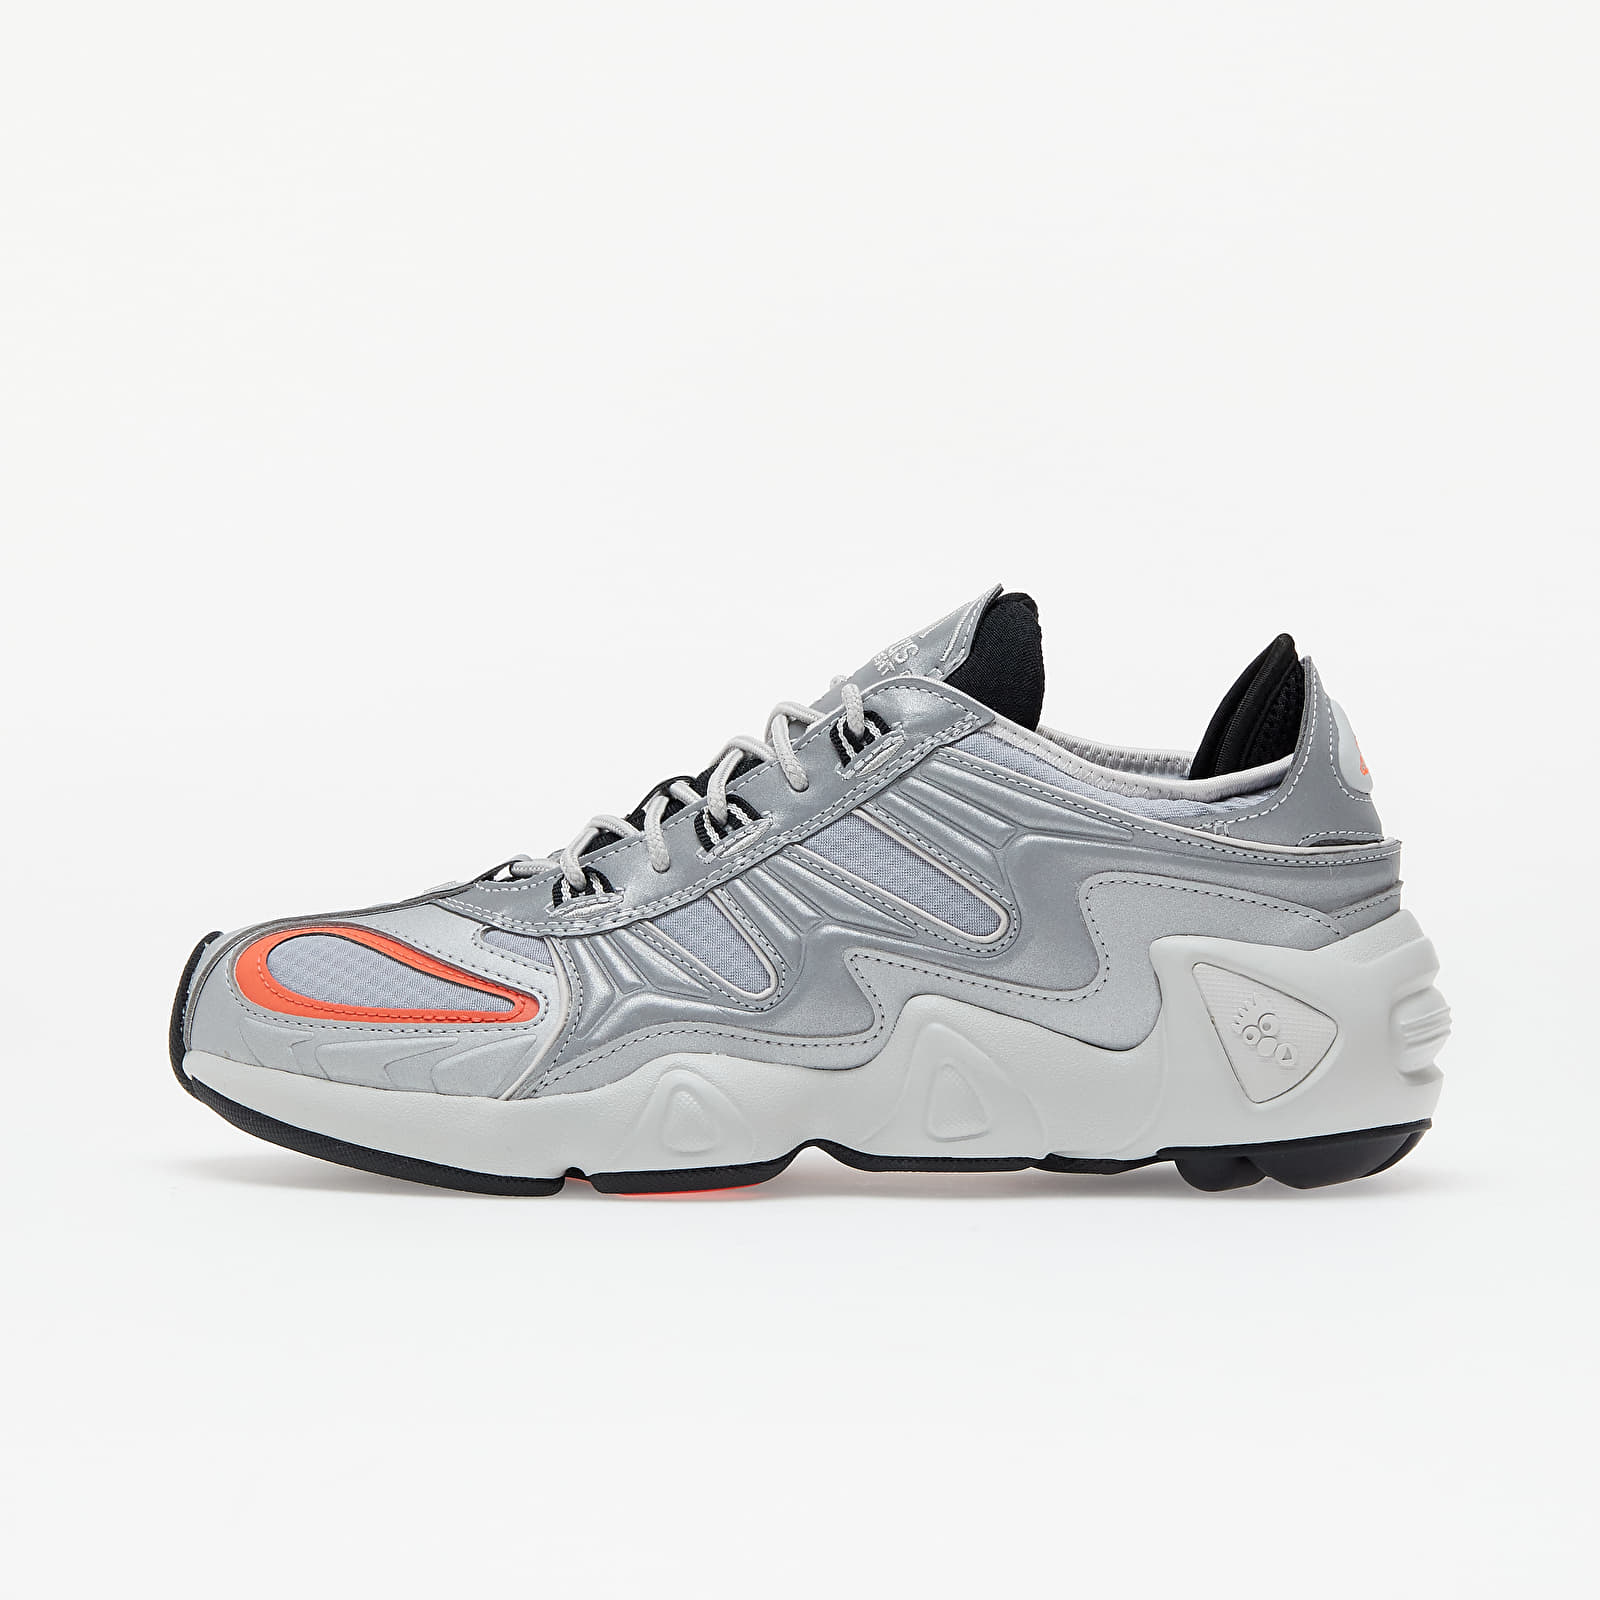 Men's shoes adidas FYW S-97 Silver Mate/ Silver Mate/ Solar Red